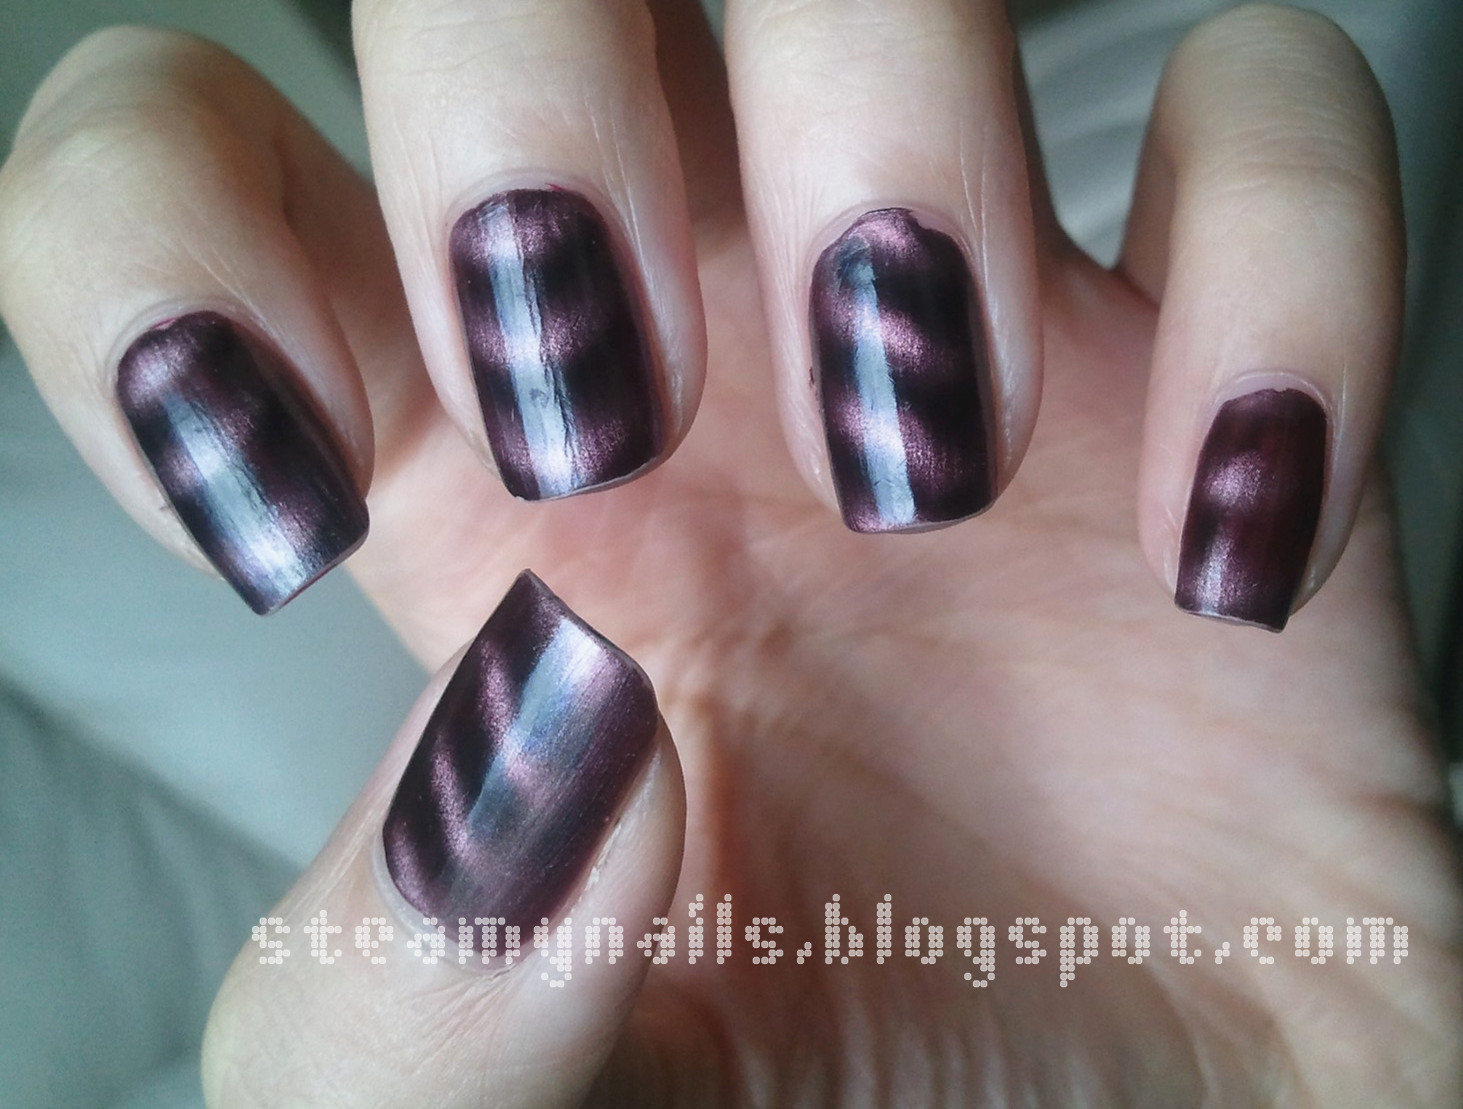 Steamy Nails Amway Magnetic Nail Polish Artistry Swatches And Review